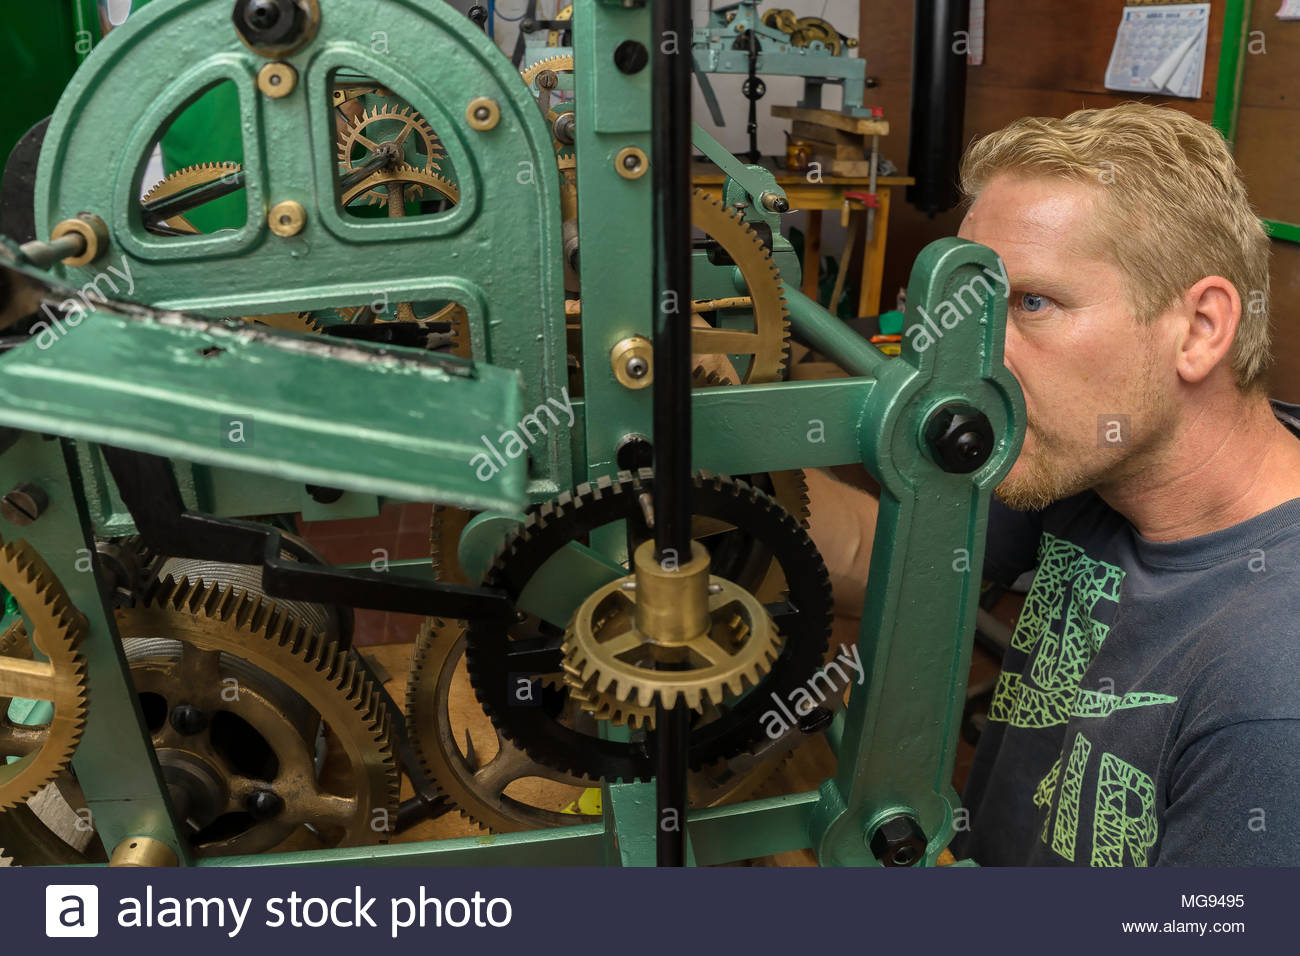 clock-repair-shop-blond-man-working-on-a